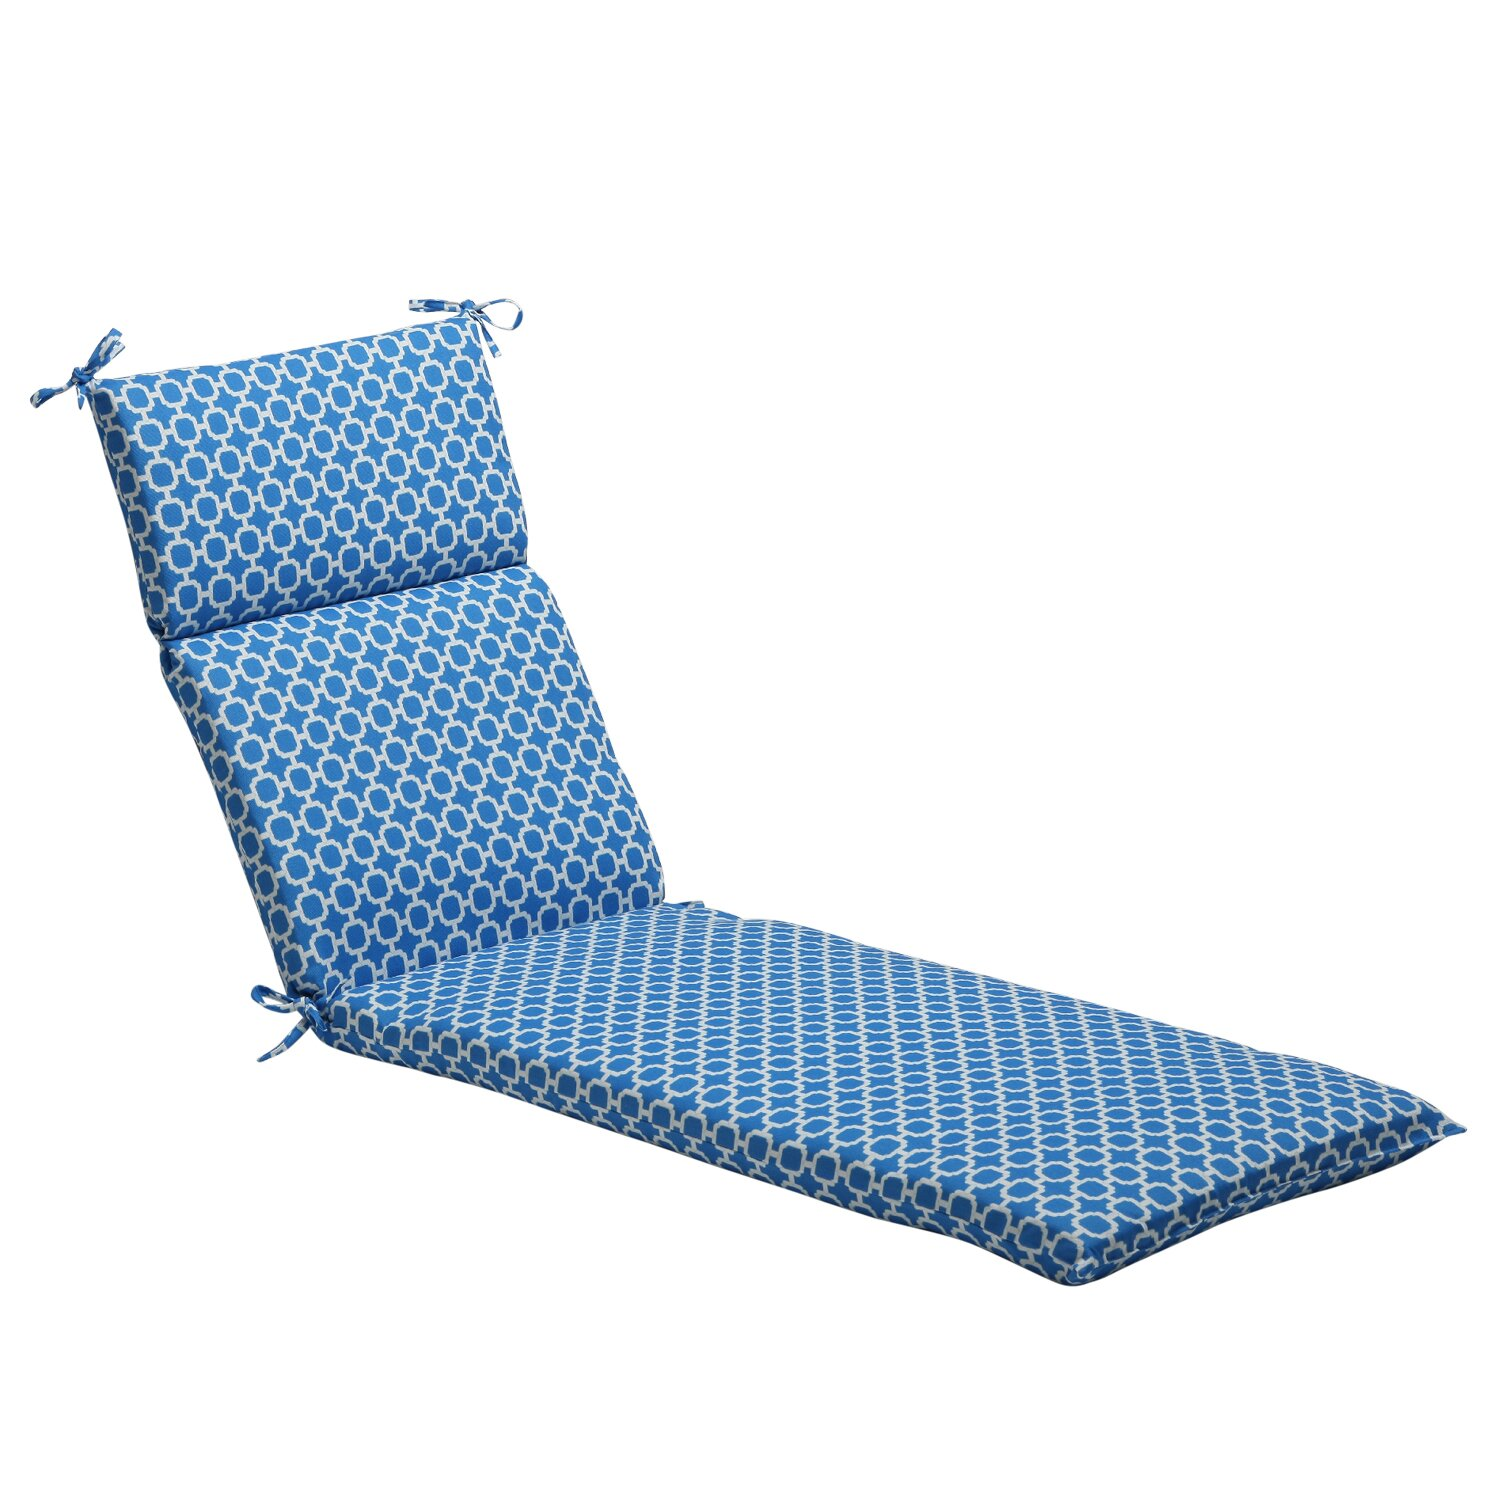 Pillow perfect outdoor chaise lounge cushion reviews for Chaise lounge cushion outdoor